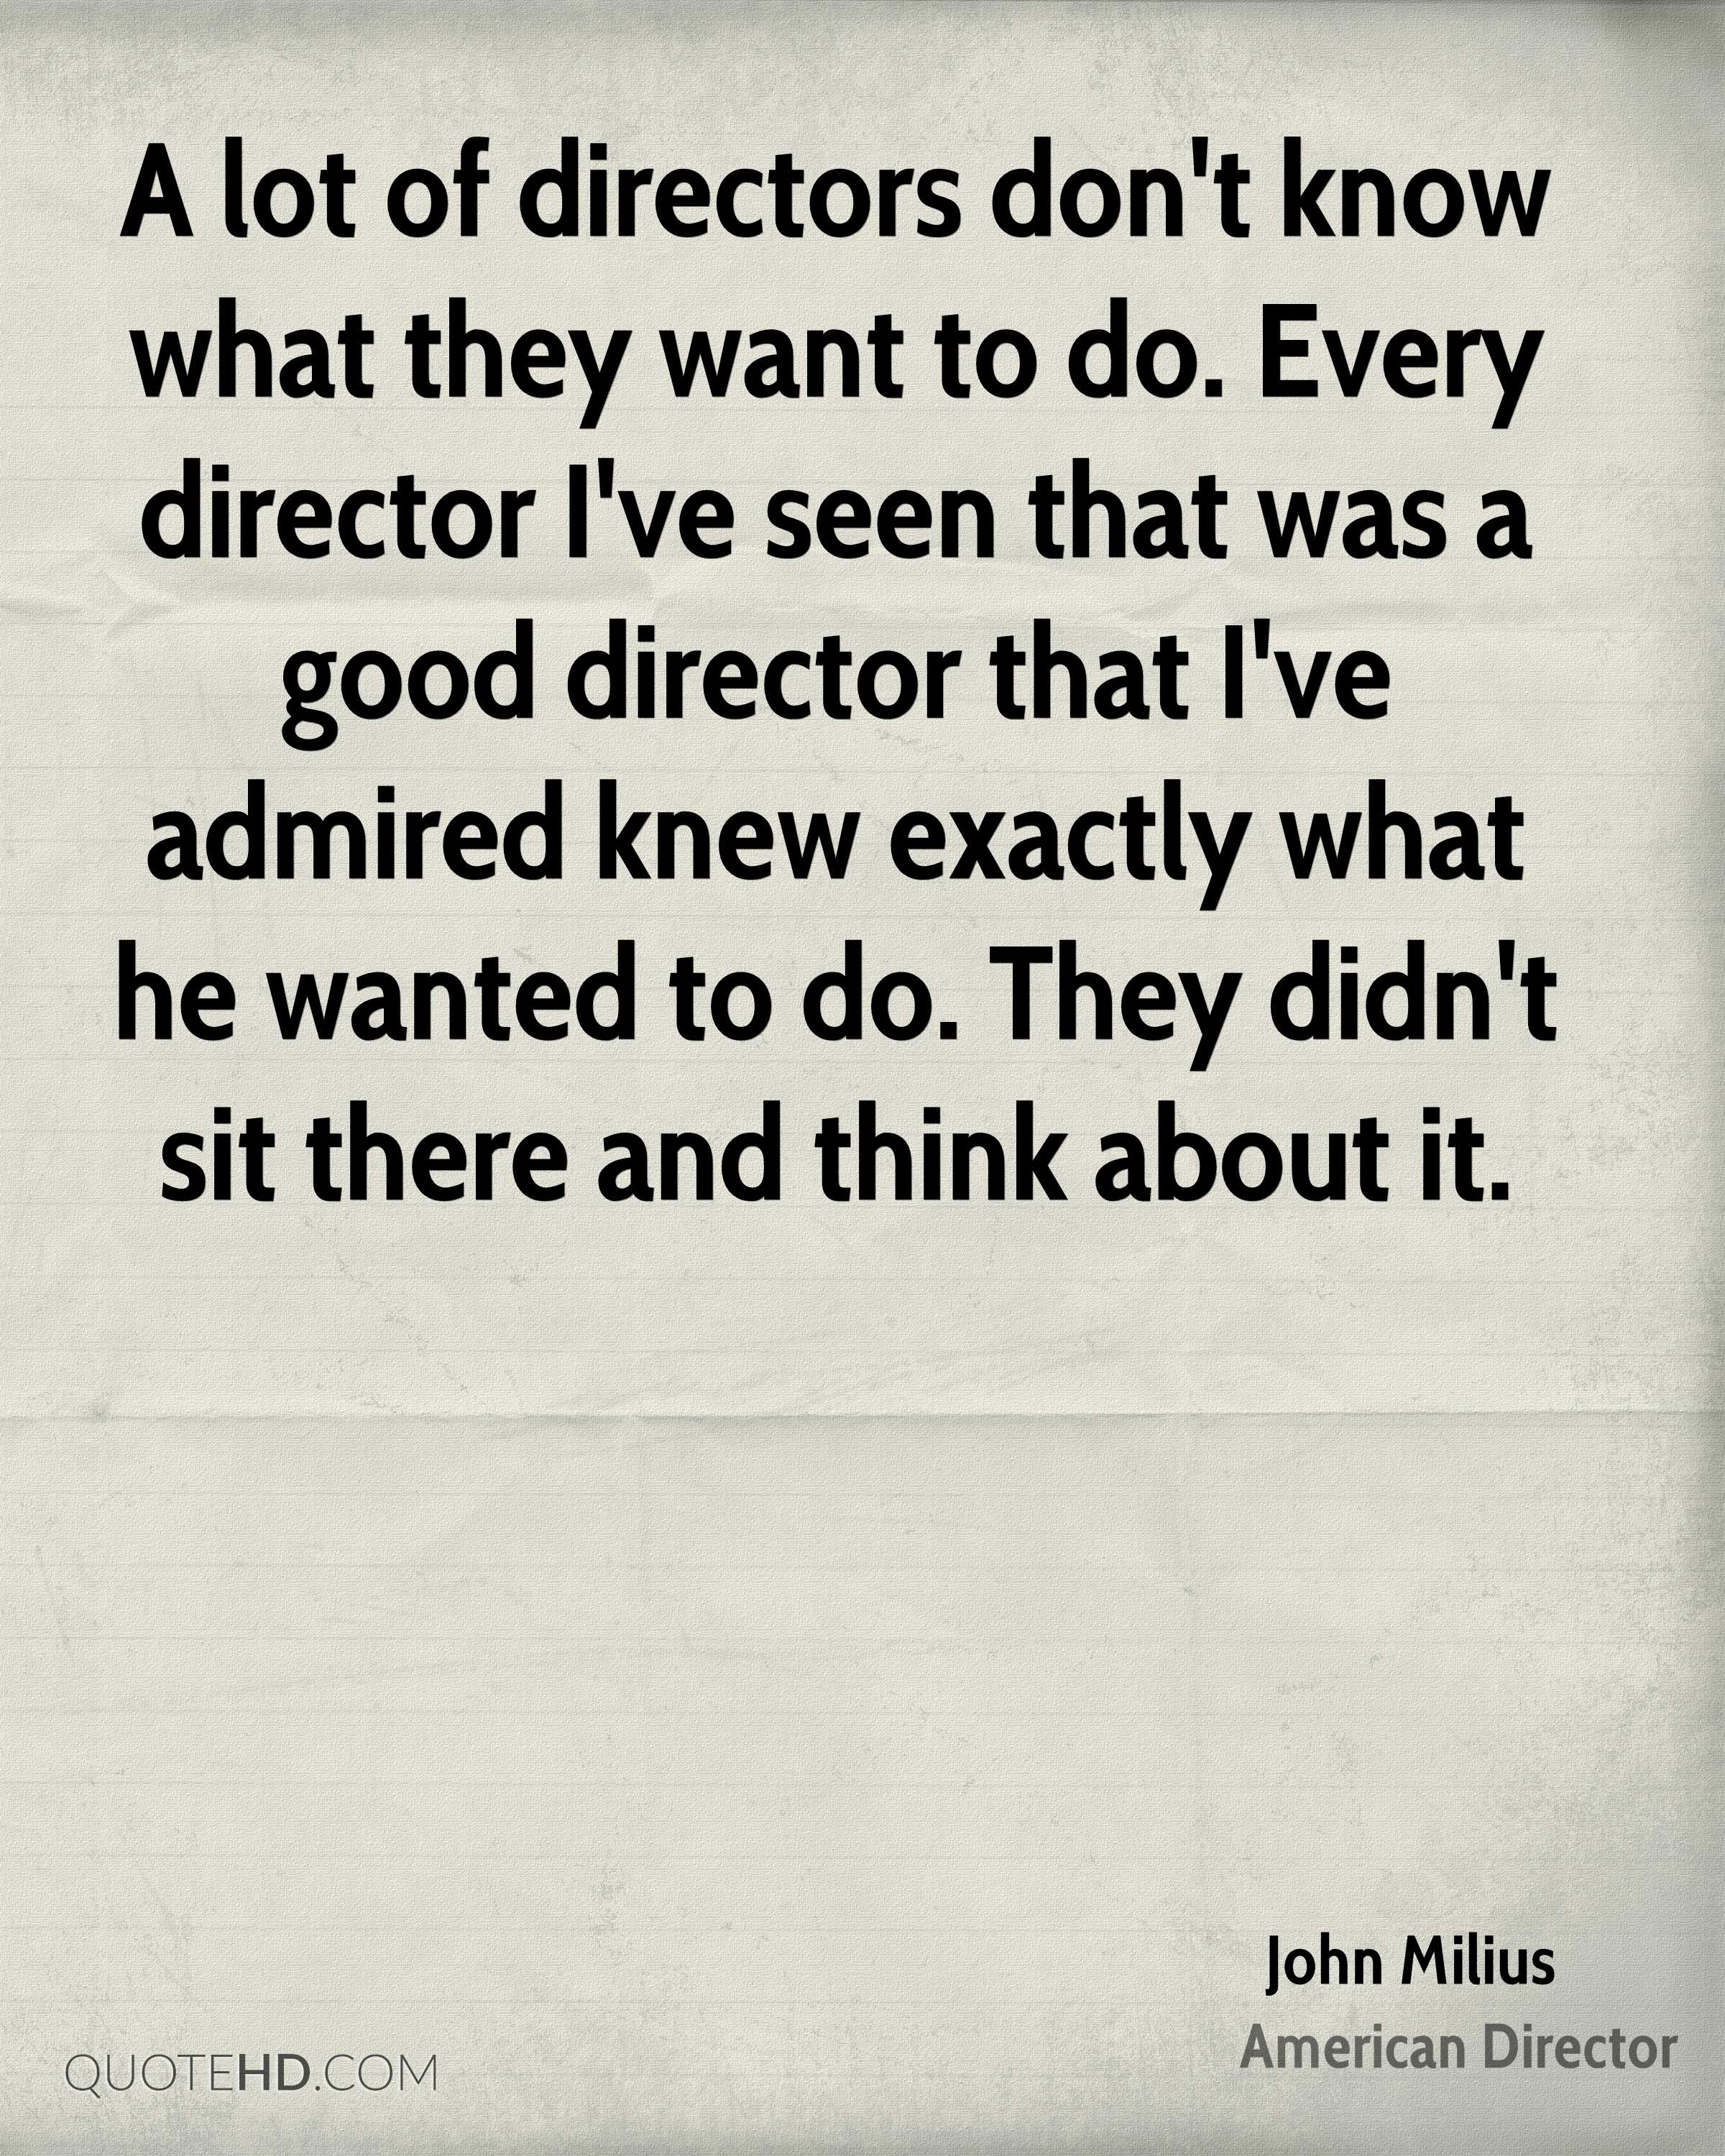 A lot of directors don't know what they want to do. Every director I've seen that was a good director that I've admired knew exactly what he wanted to do. They didn't sit there and think about it.